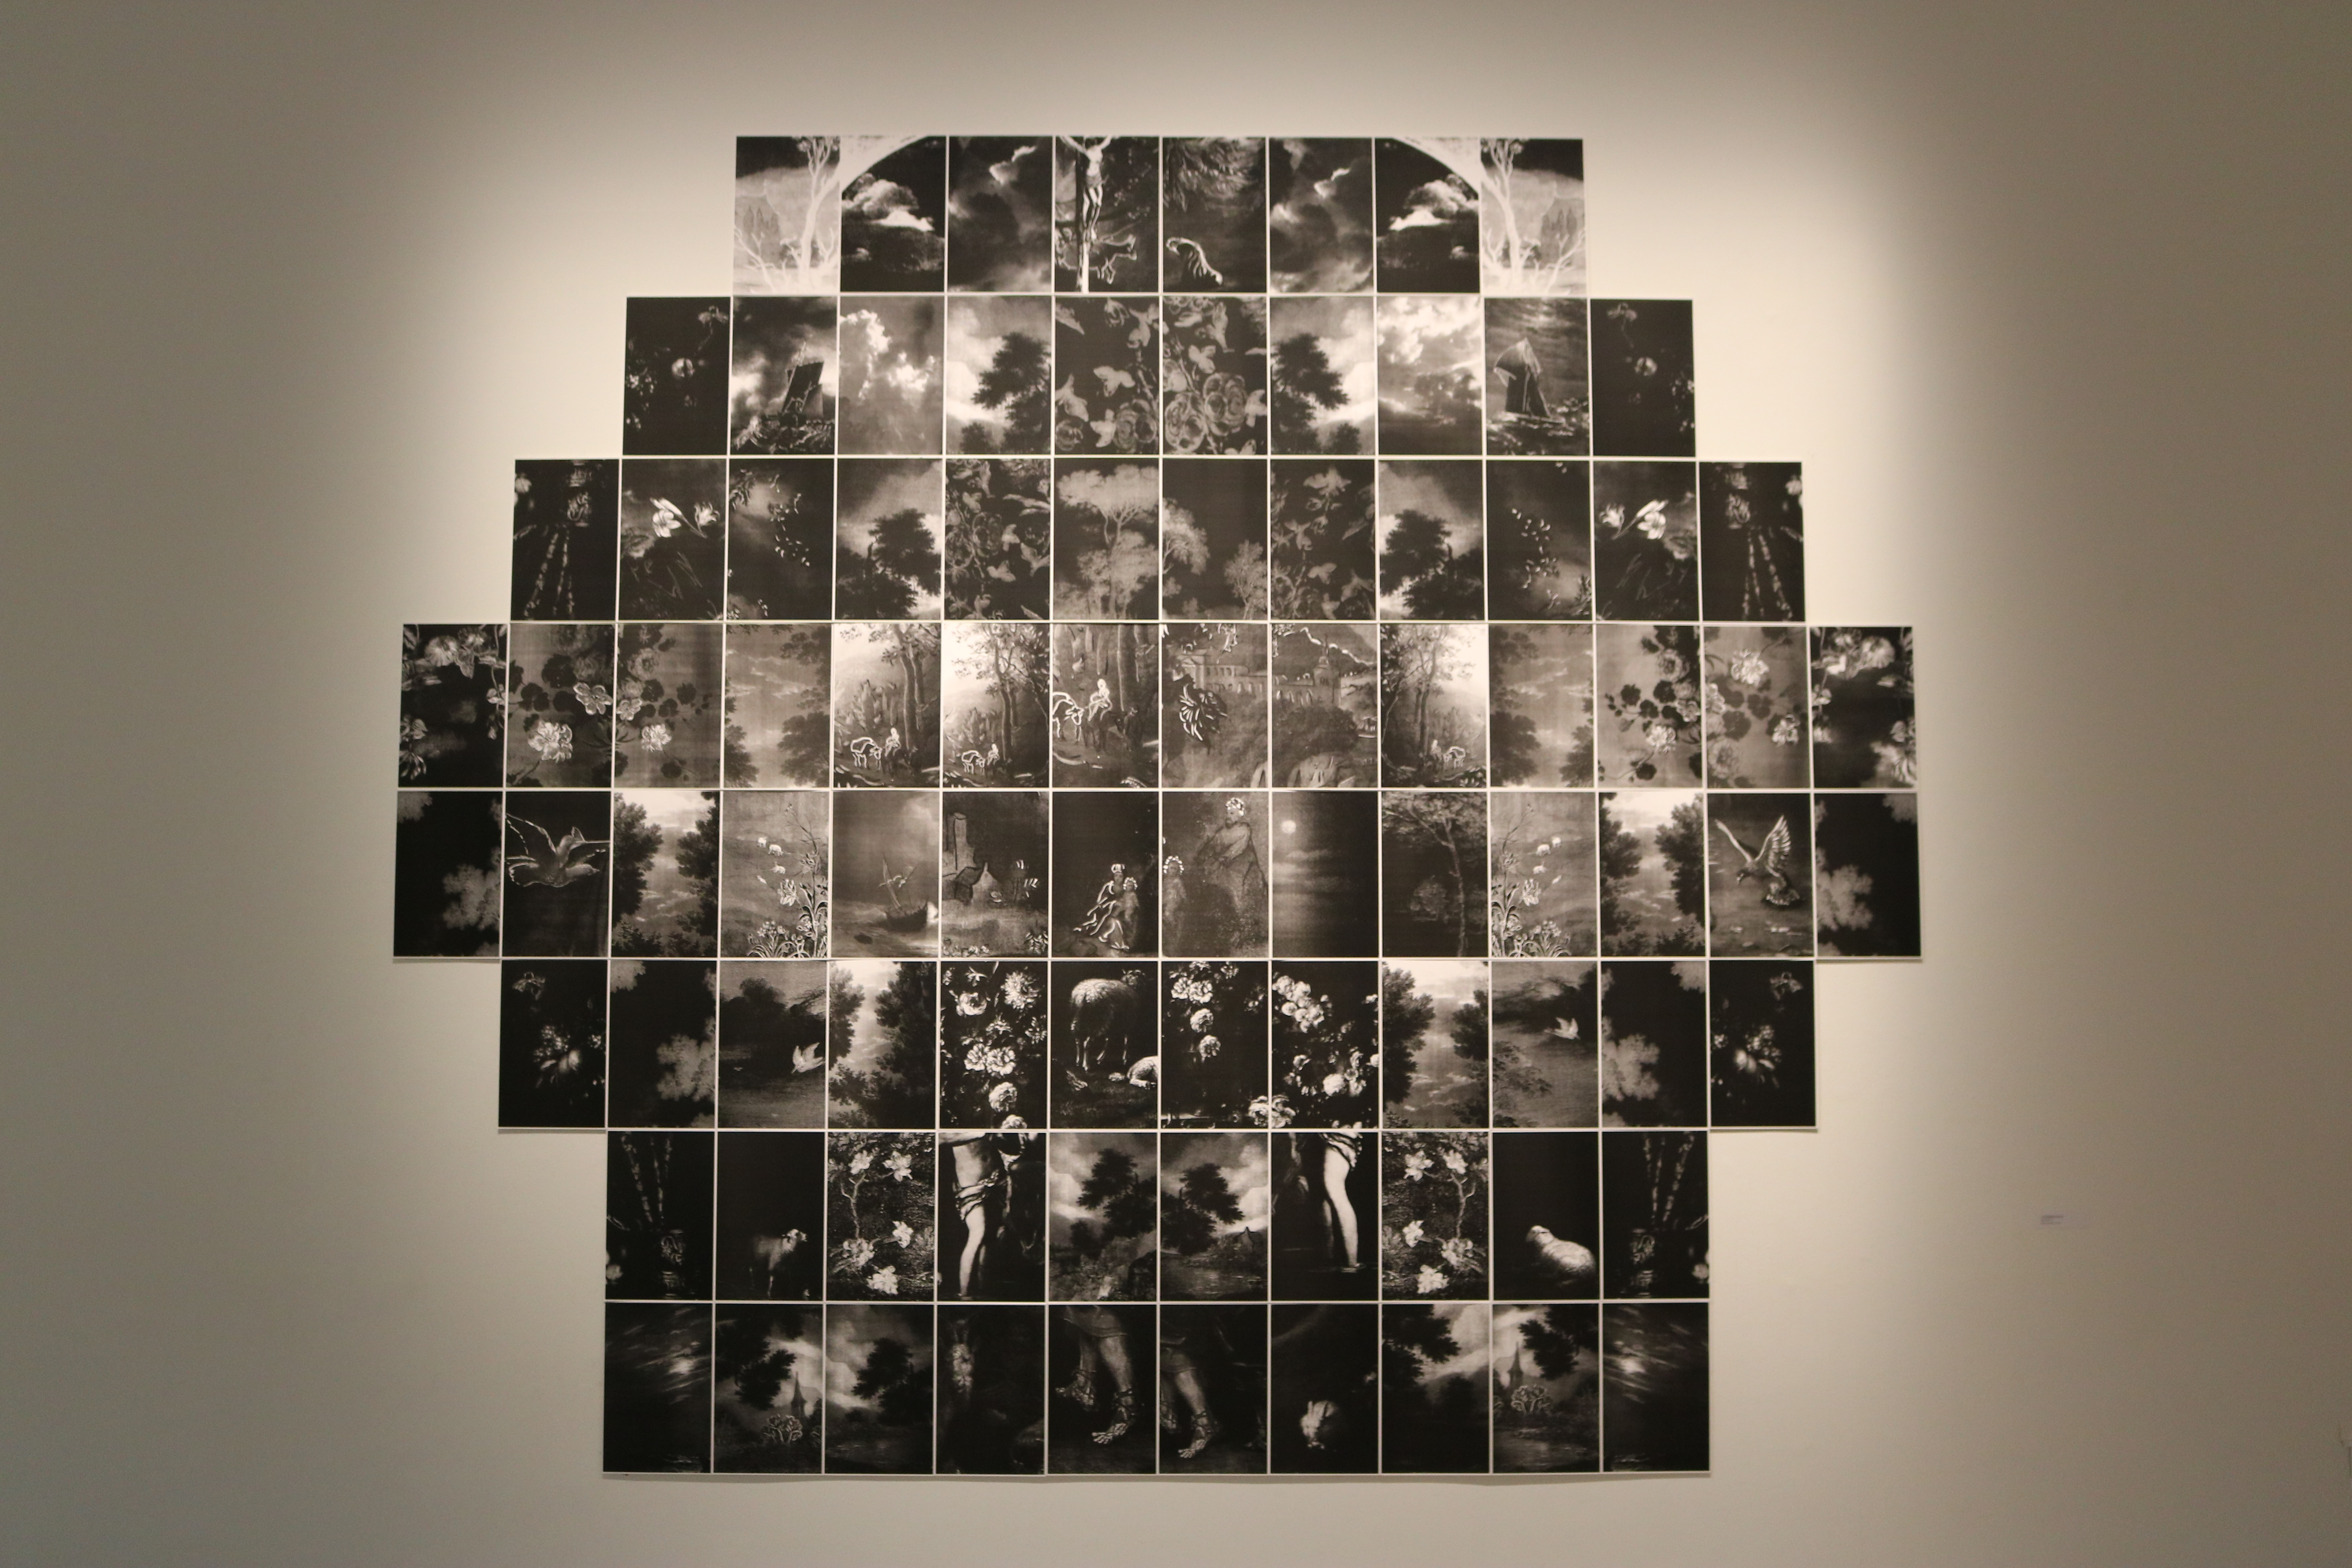 The Paul Zuccaire Gallery has a new show on display through Dec. 18. EVEAN YUSON/THE STATESMAN